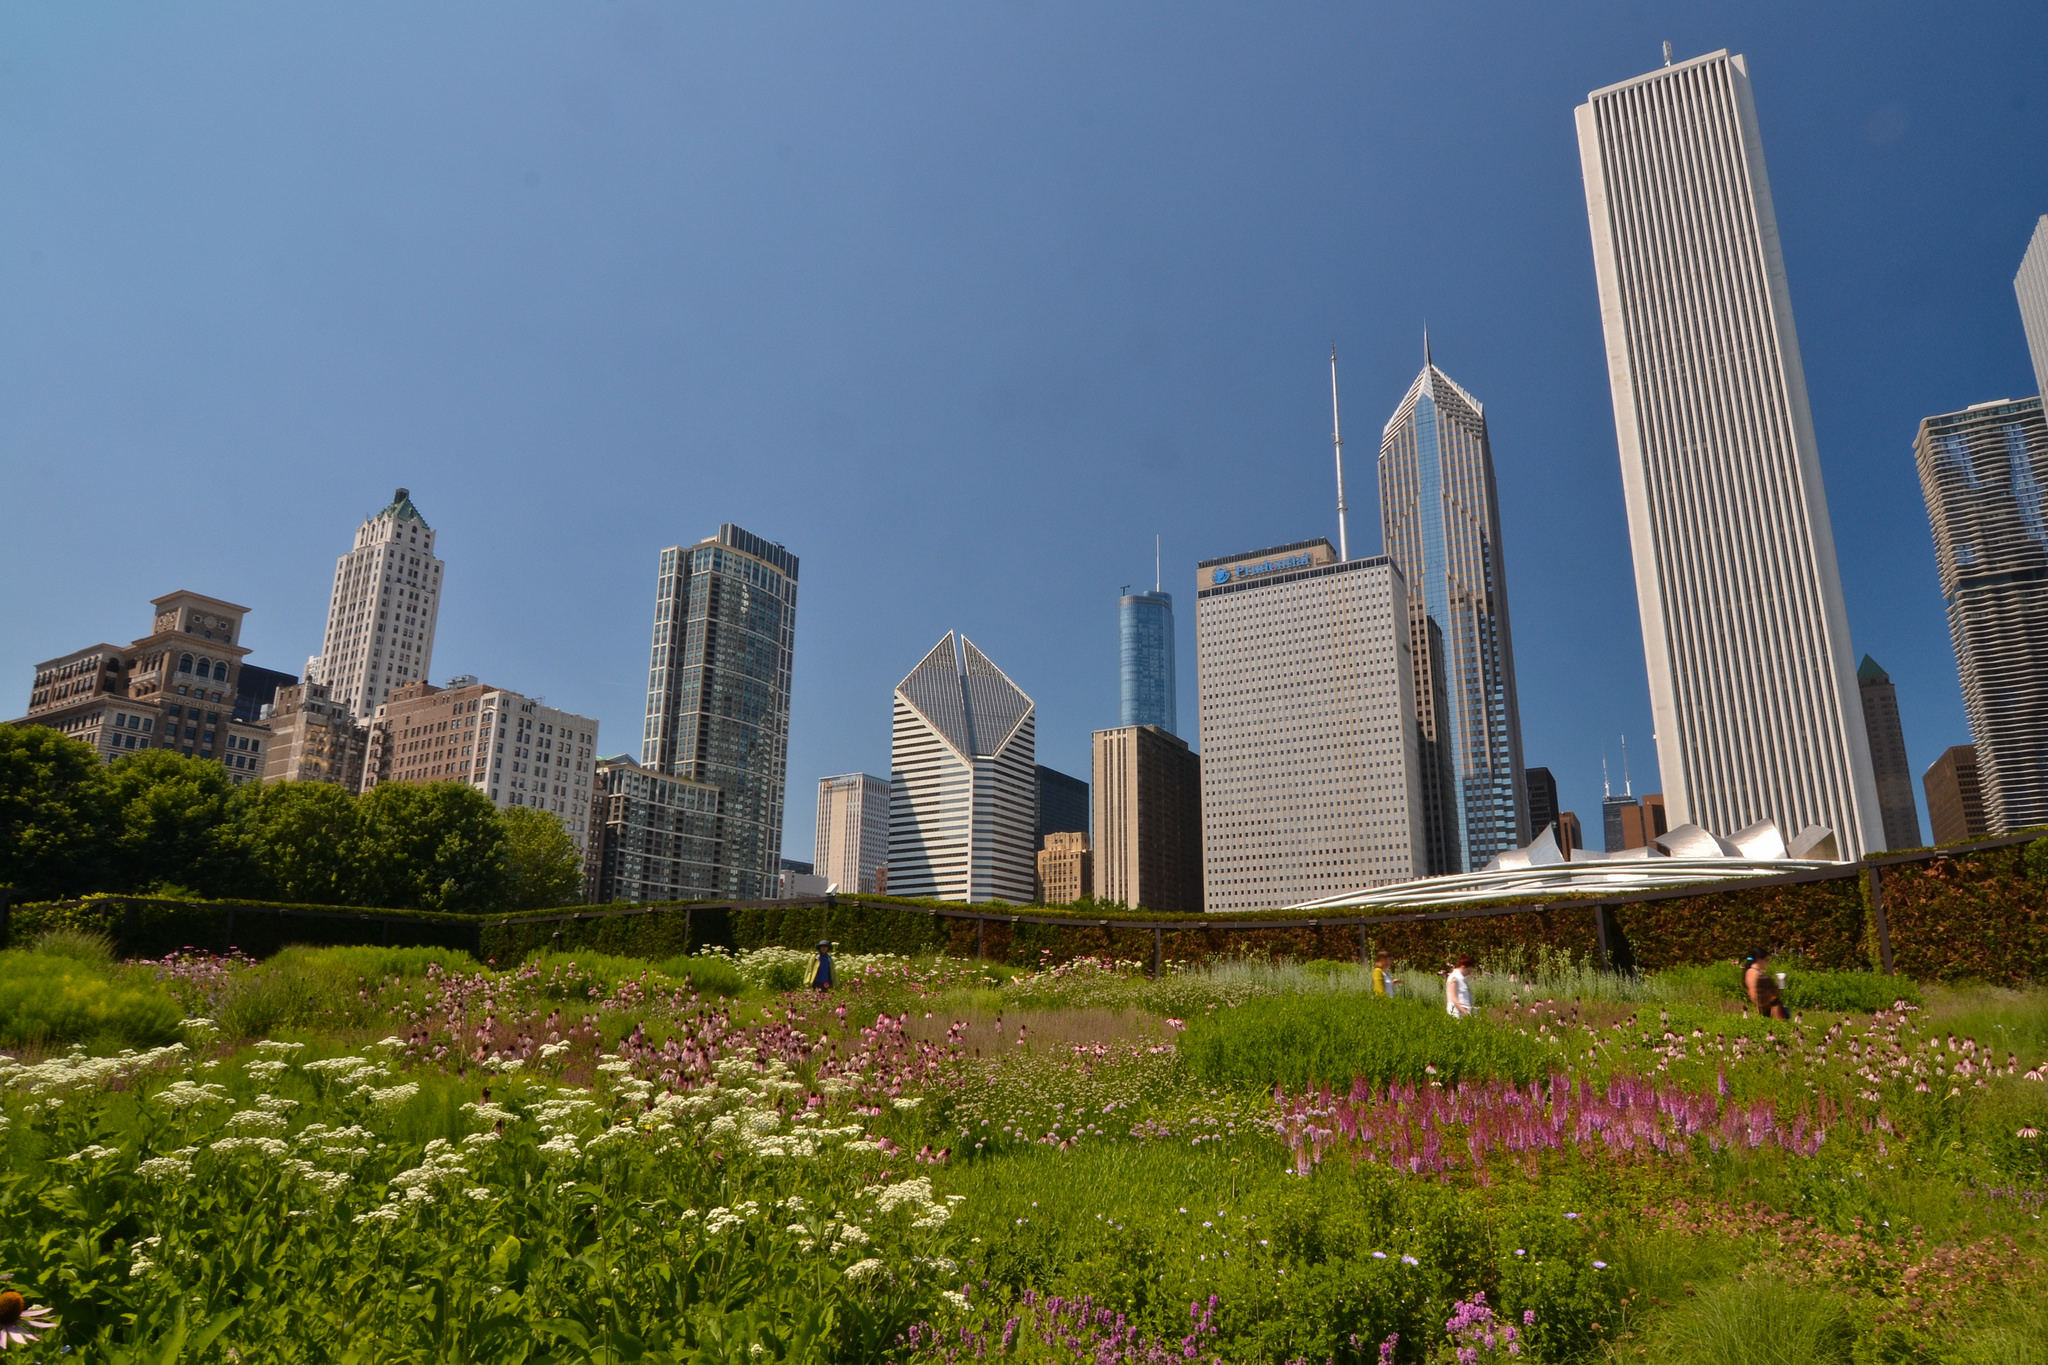 Lurie Garden at Millennium Park in Chicago